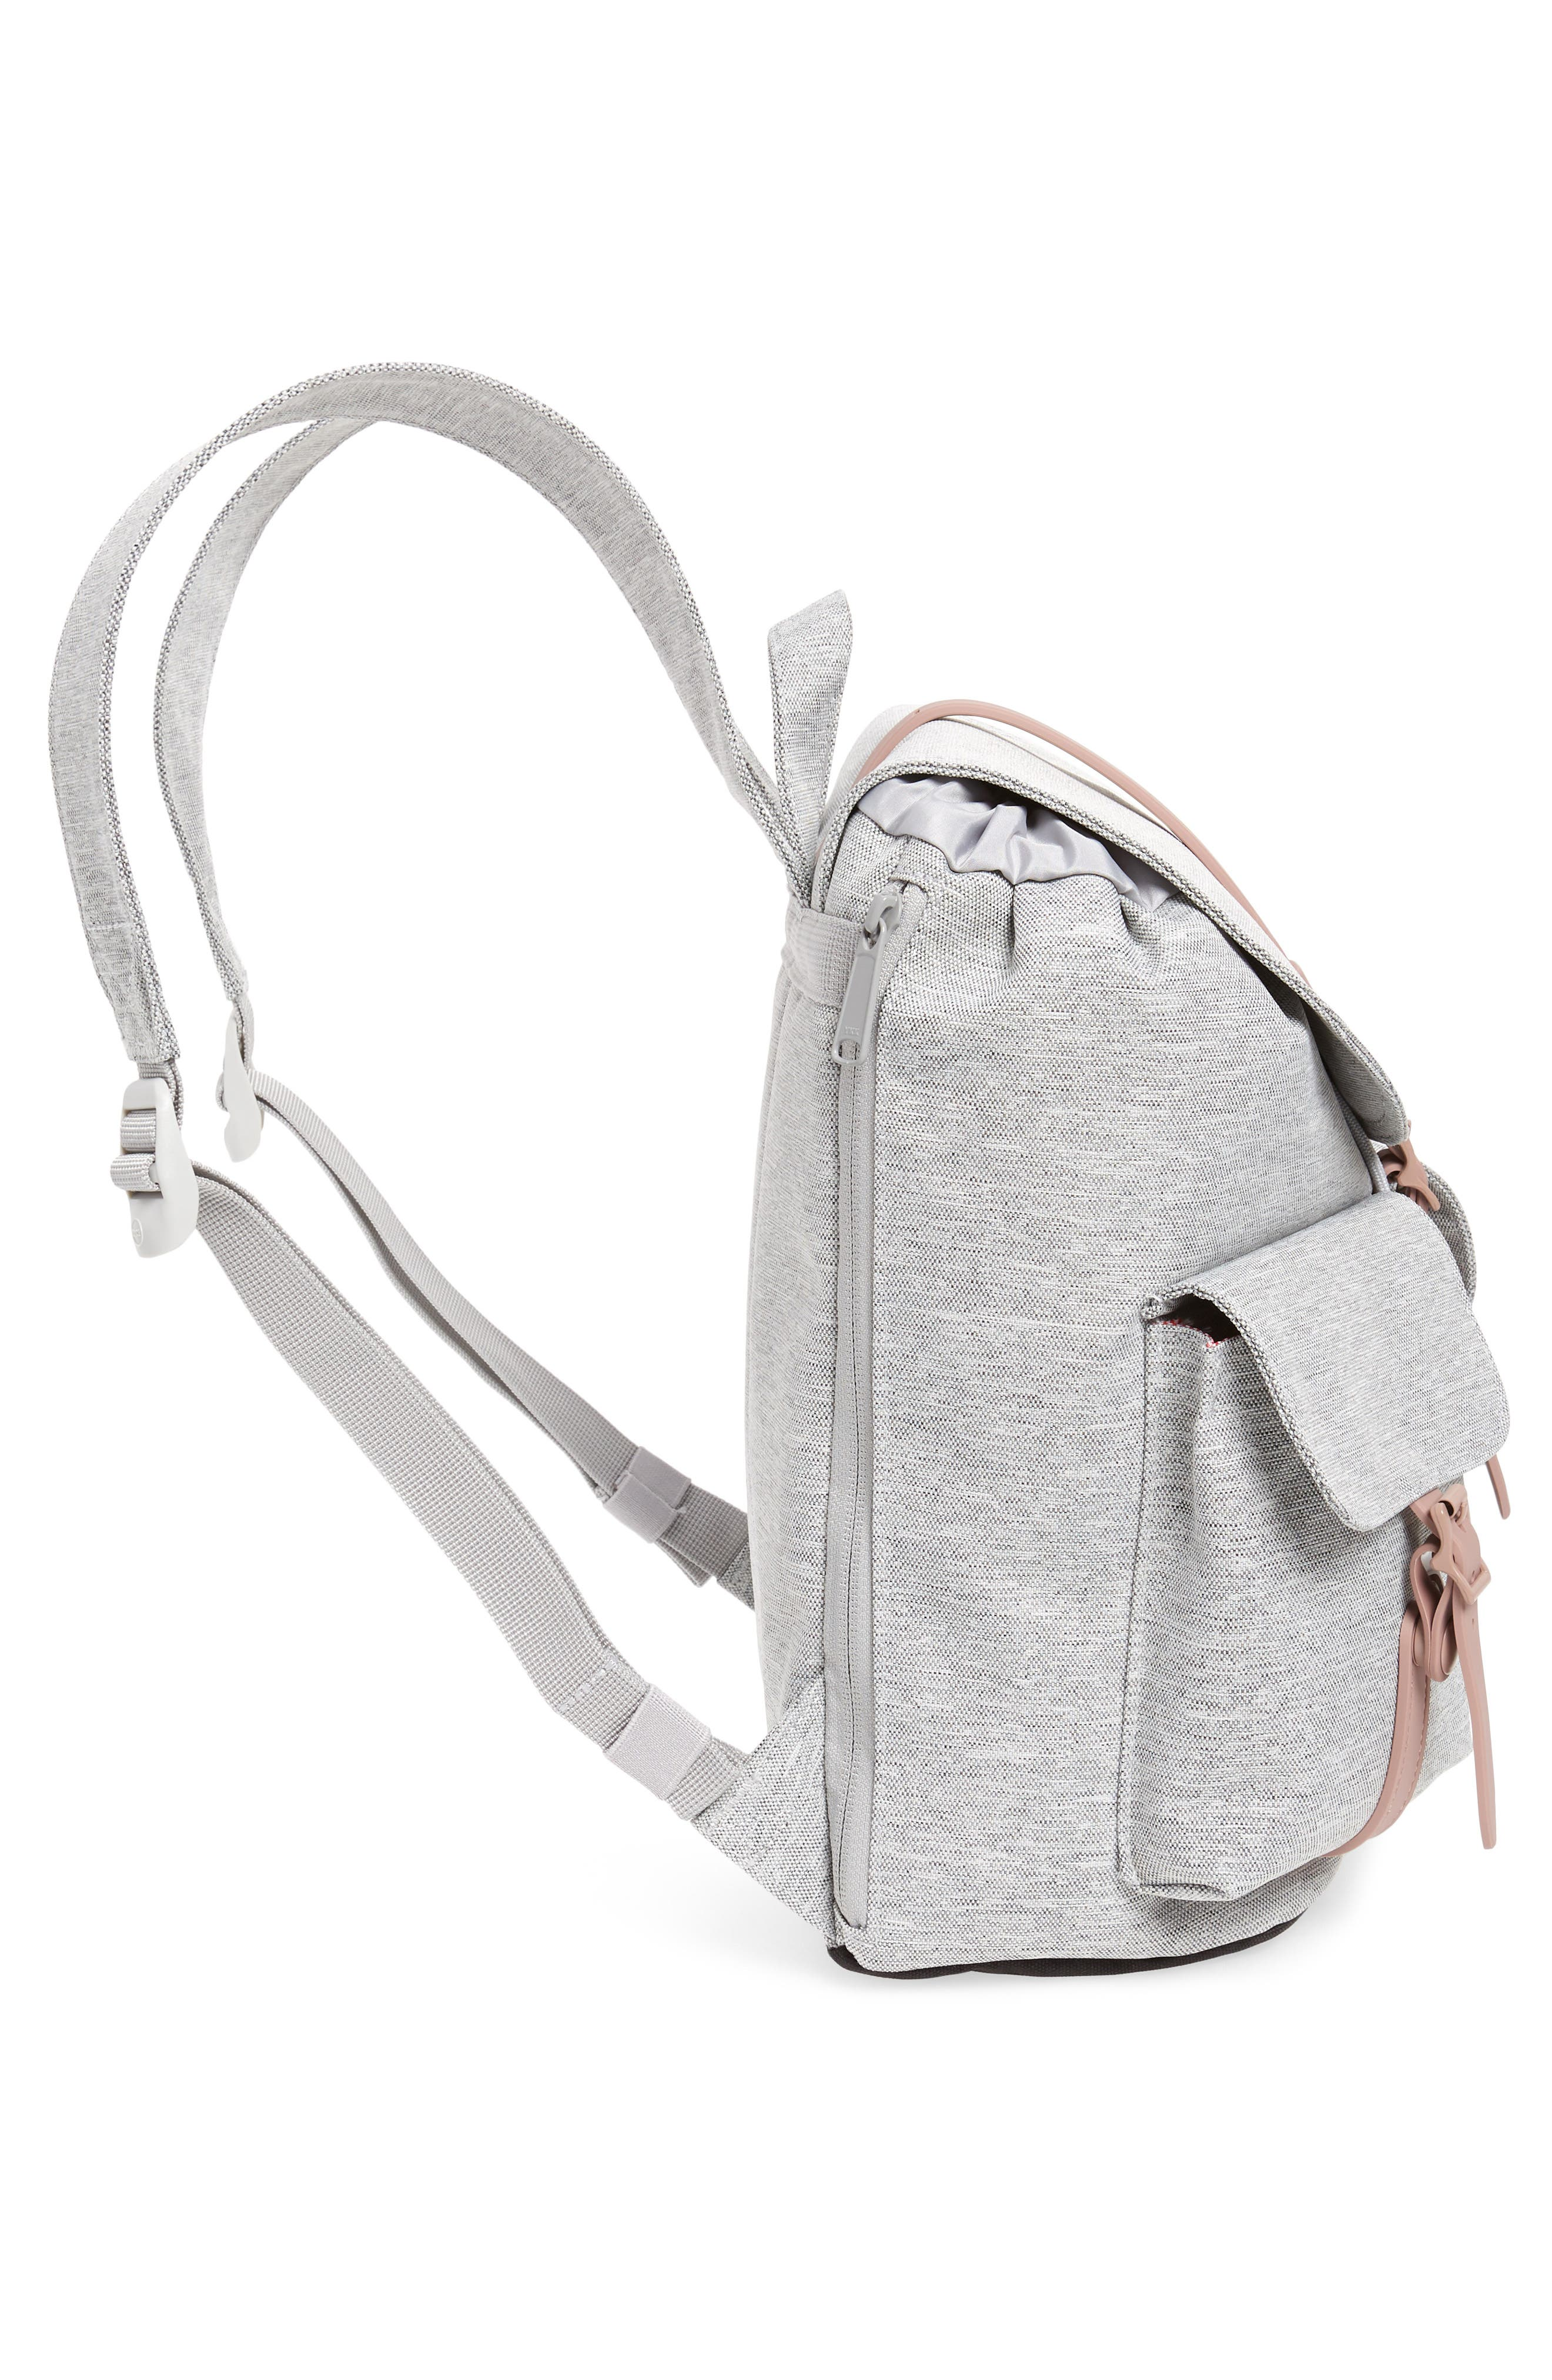 X-Small Dawson Backpack,                             Alternate thumbnail 5, color,                             LIGHT GREY/ ASH ROSE/ BLACK